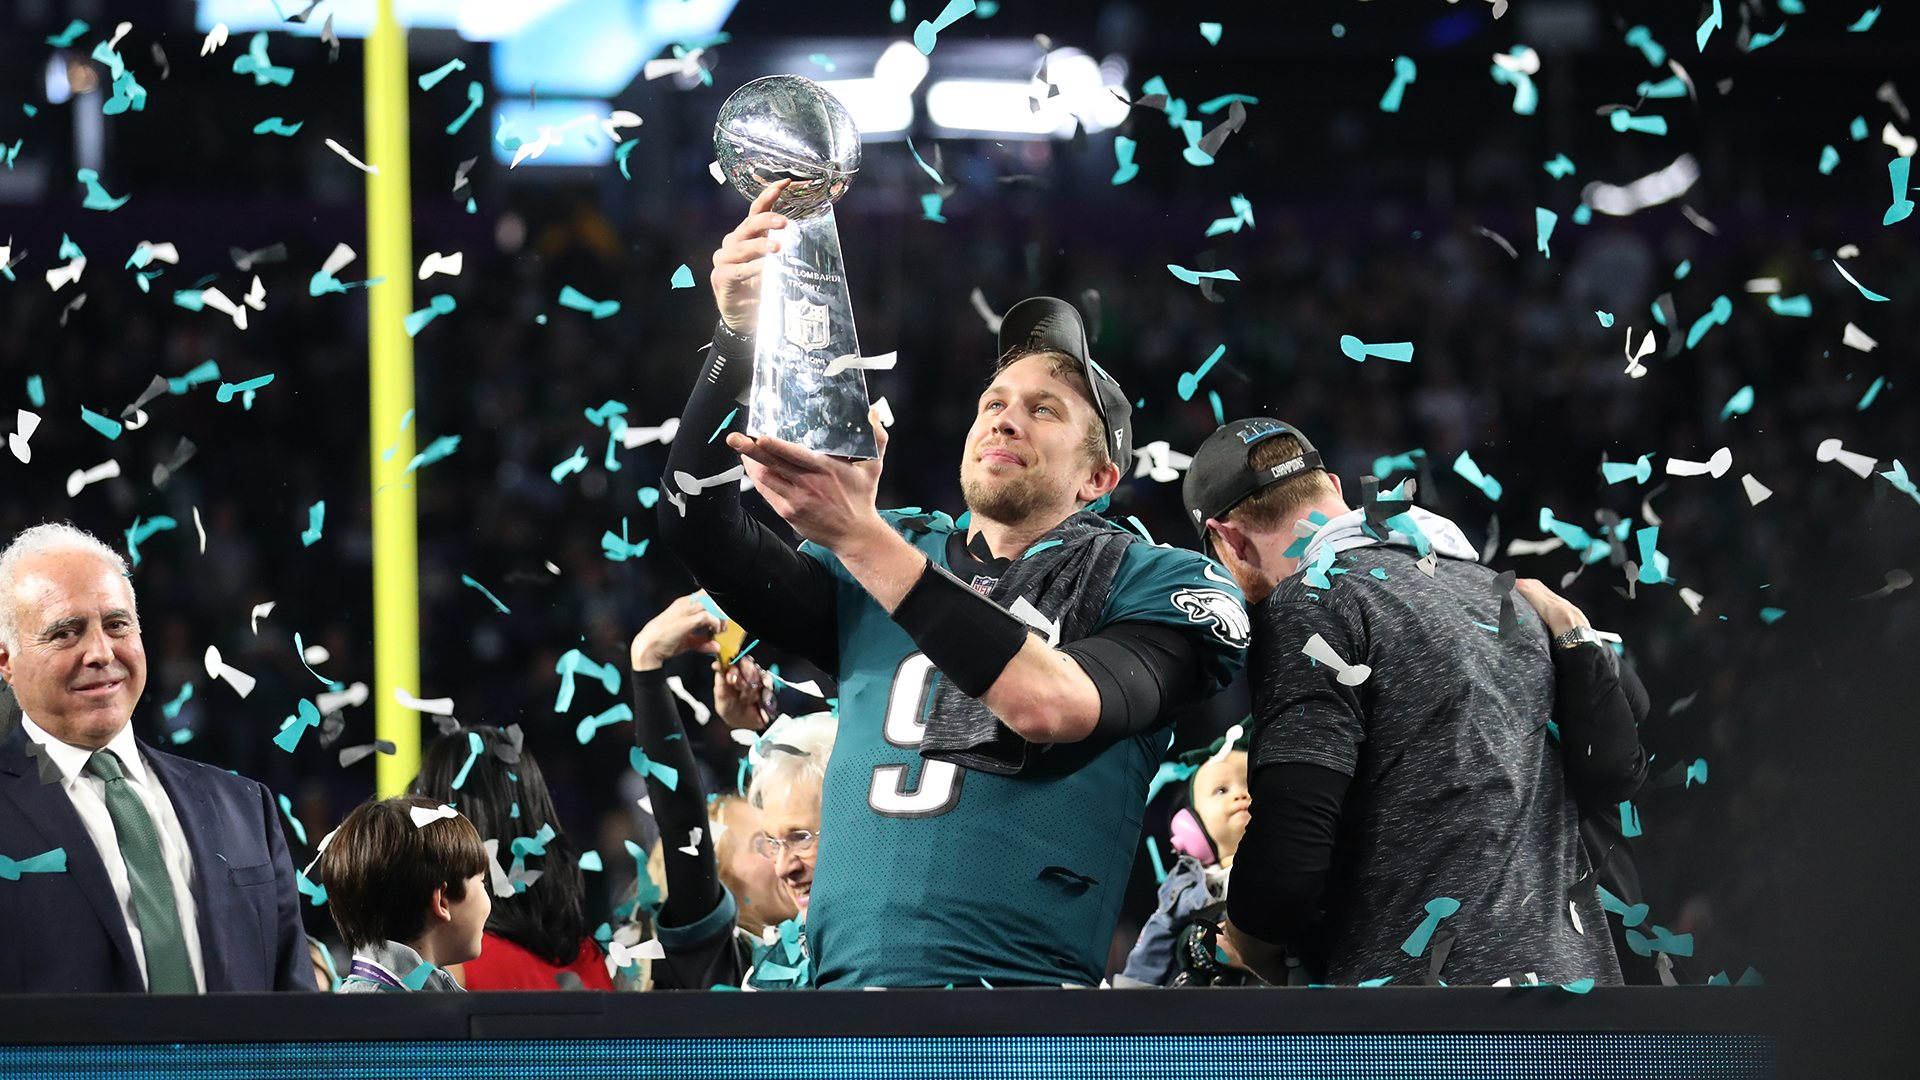 3 Things Cowboys Should Learn From The Super Bowl Champs